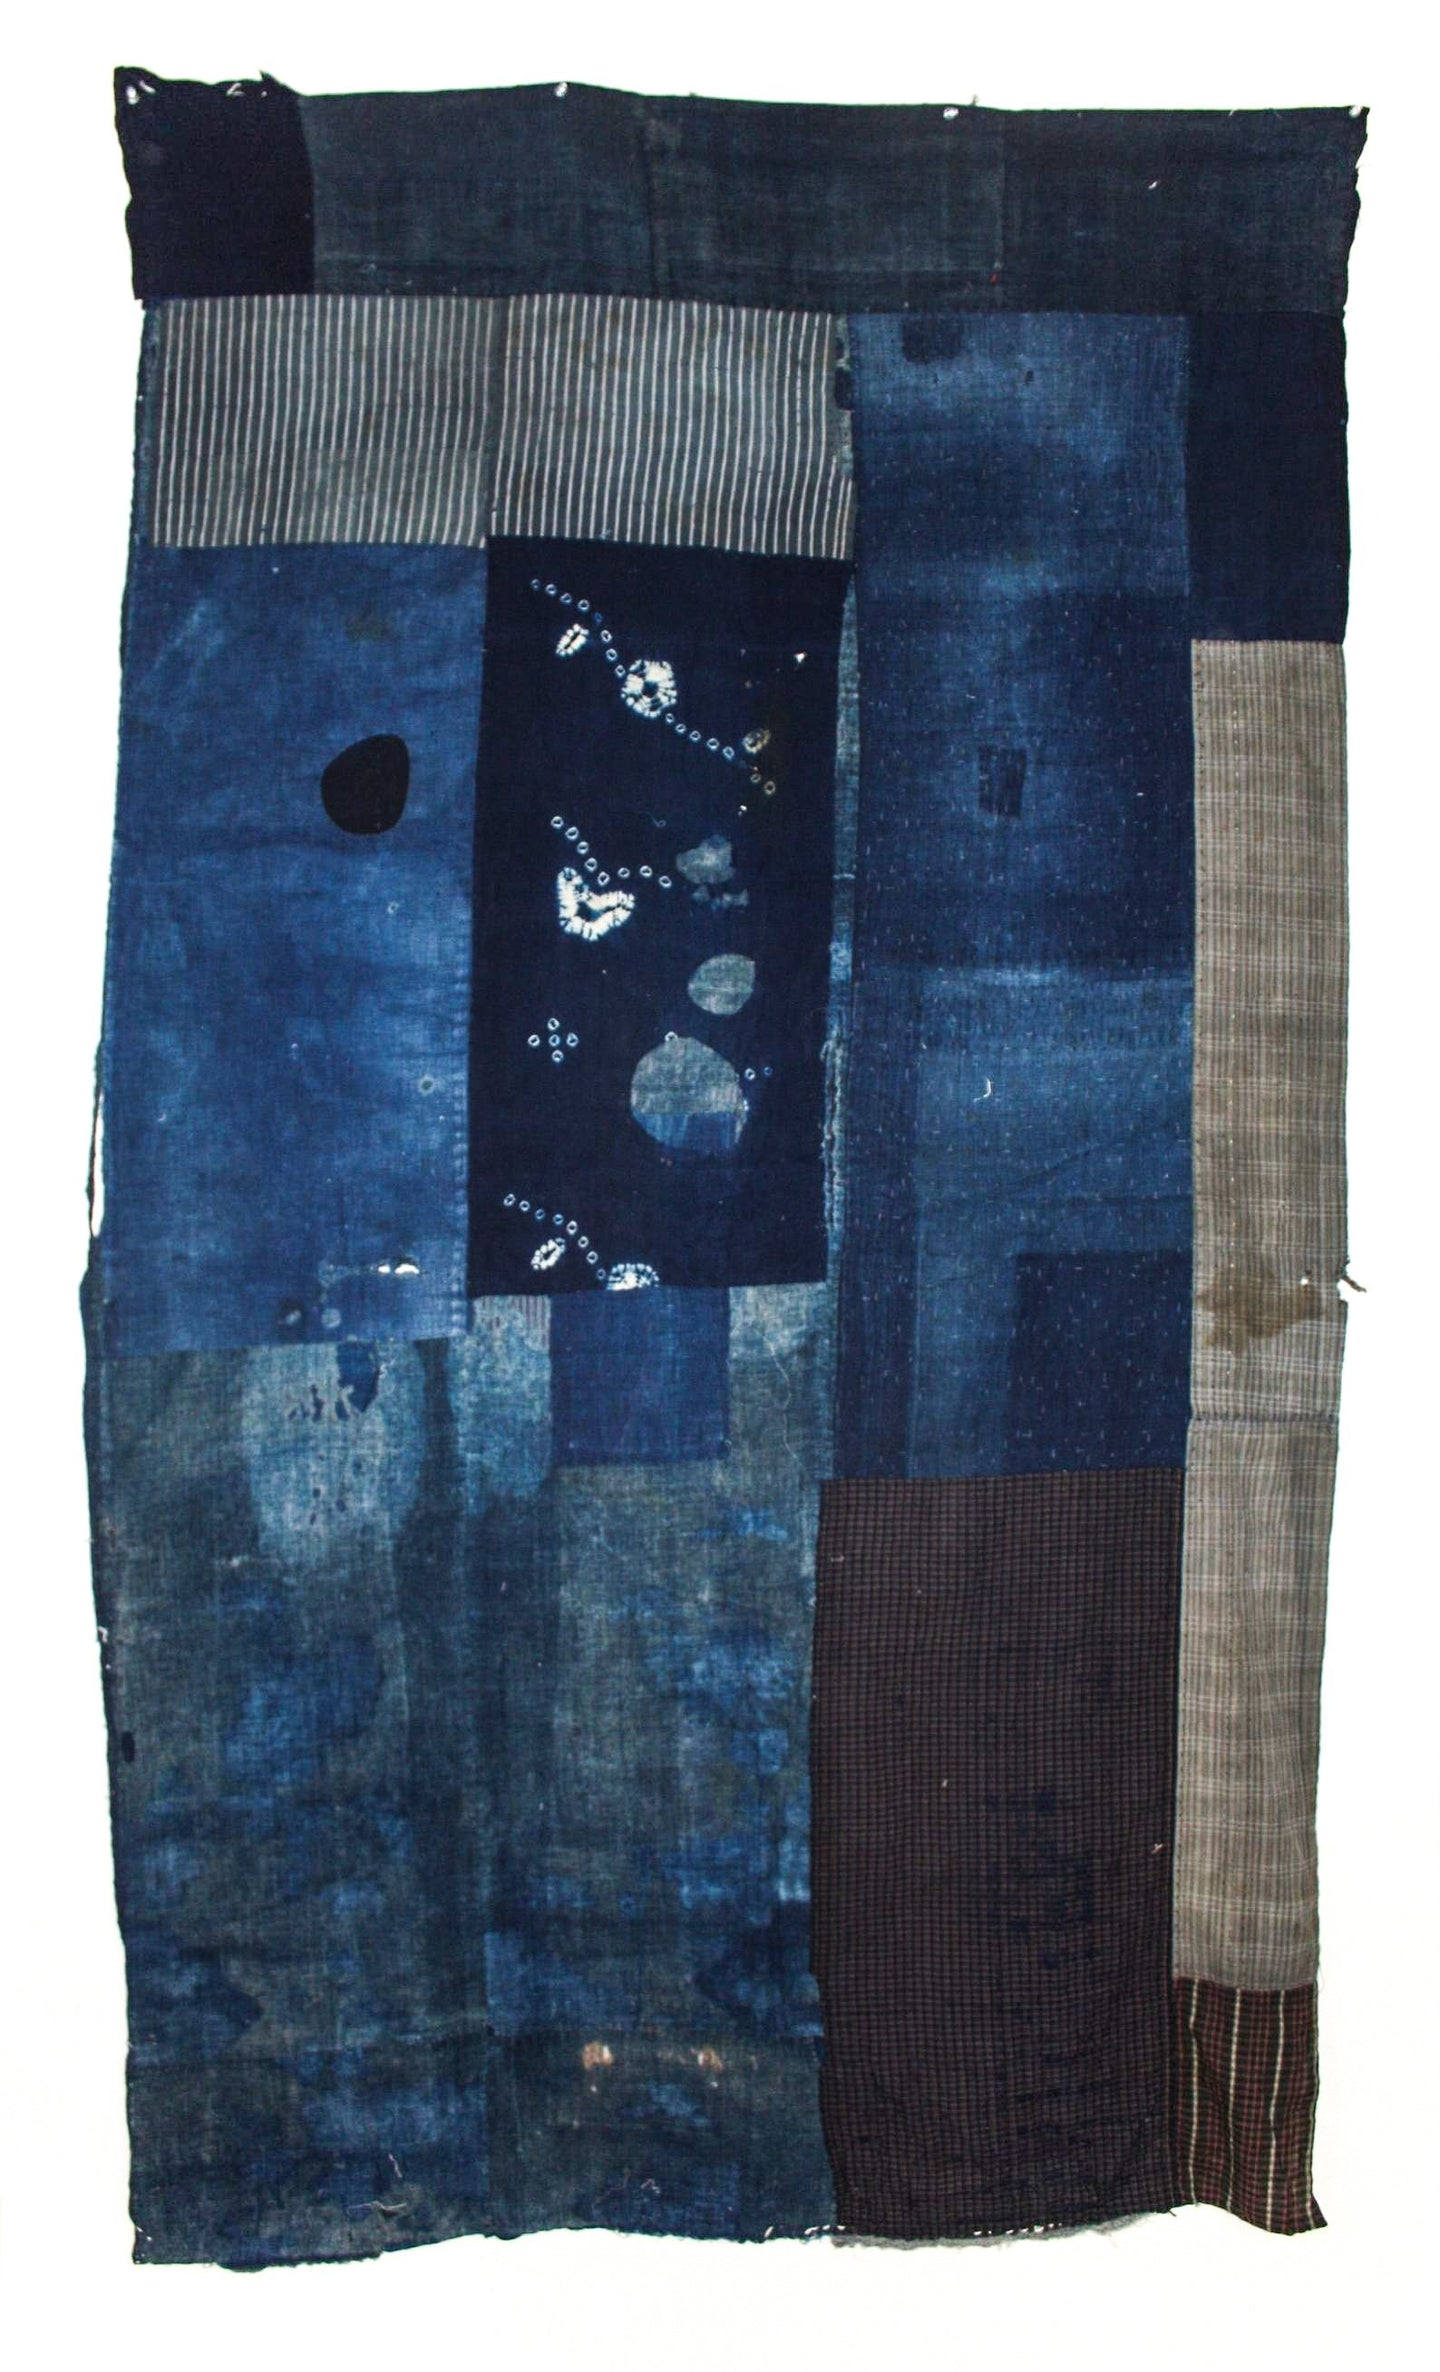 Indigo-Dyed and Patchwork Blanket